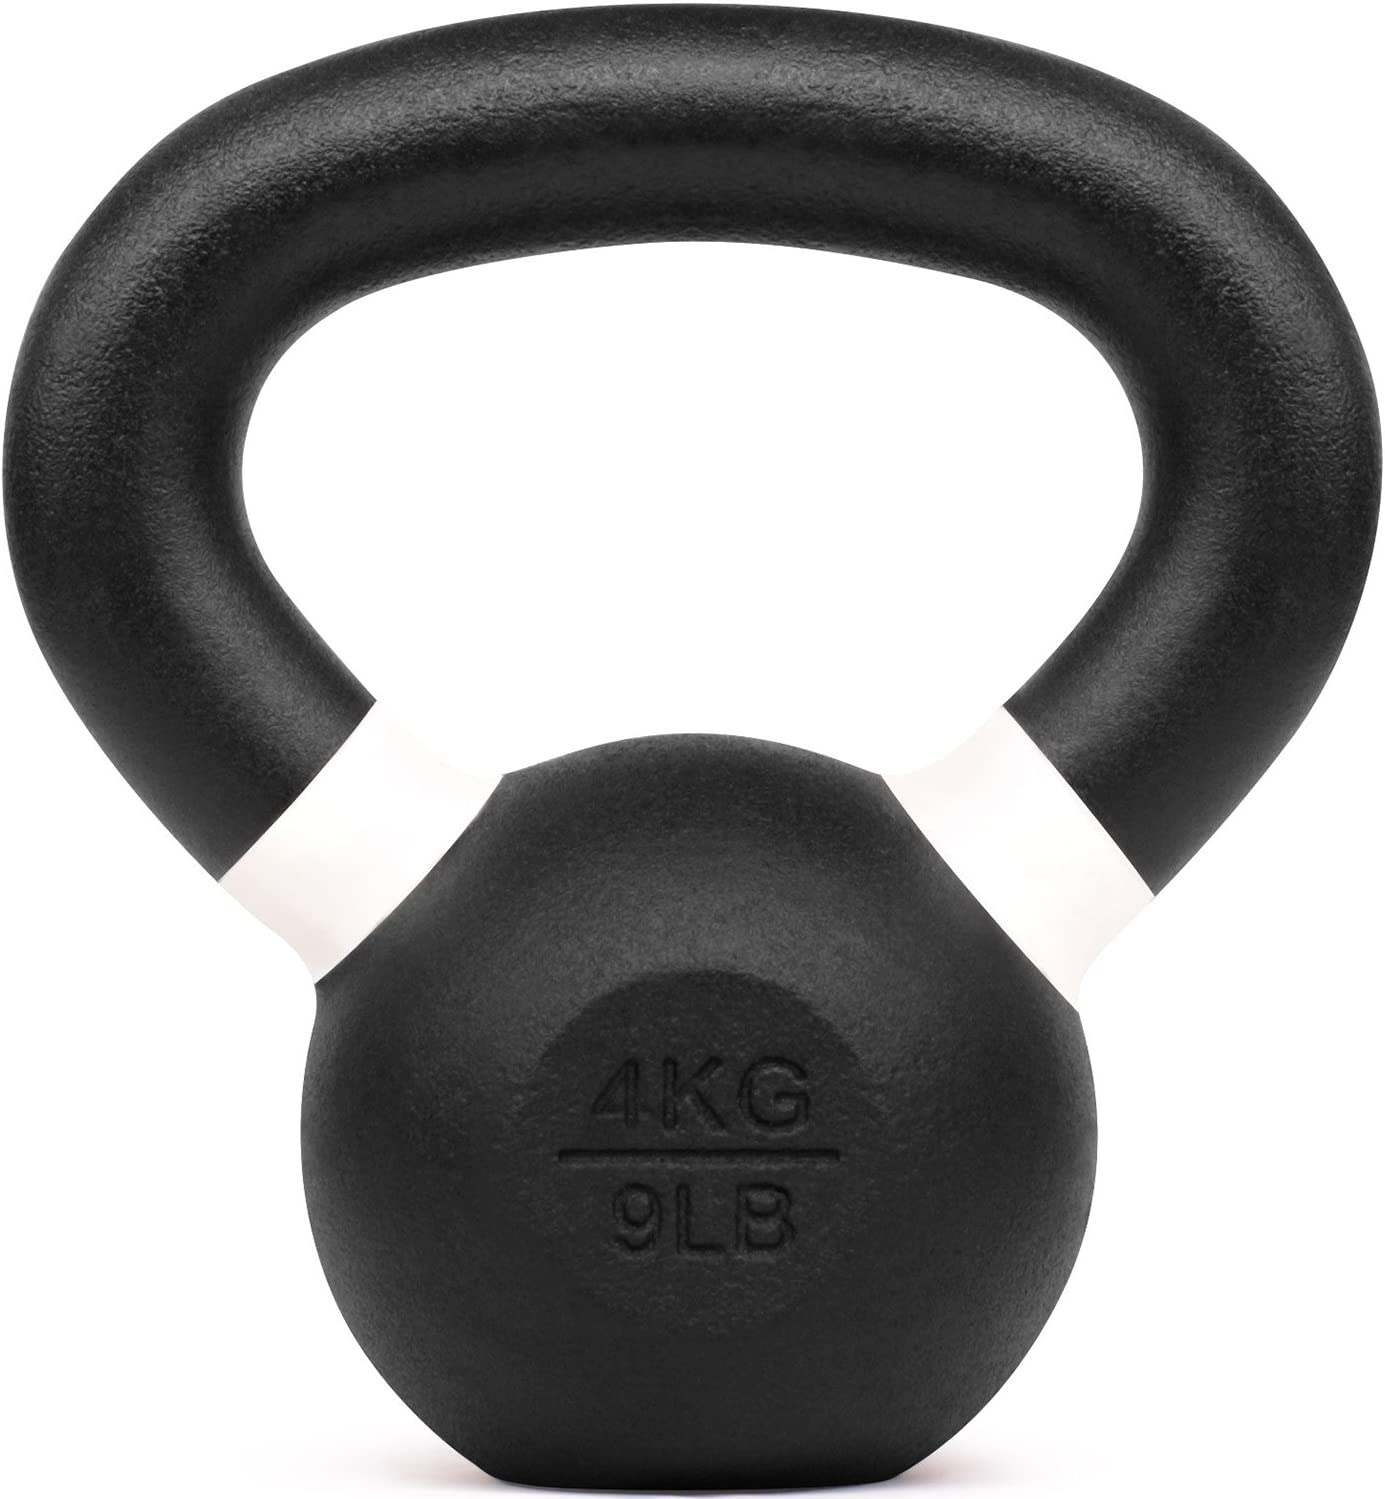 Solid Cast Iron powder coated Kettlebell Workout 5 lb